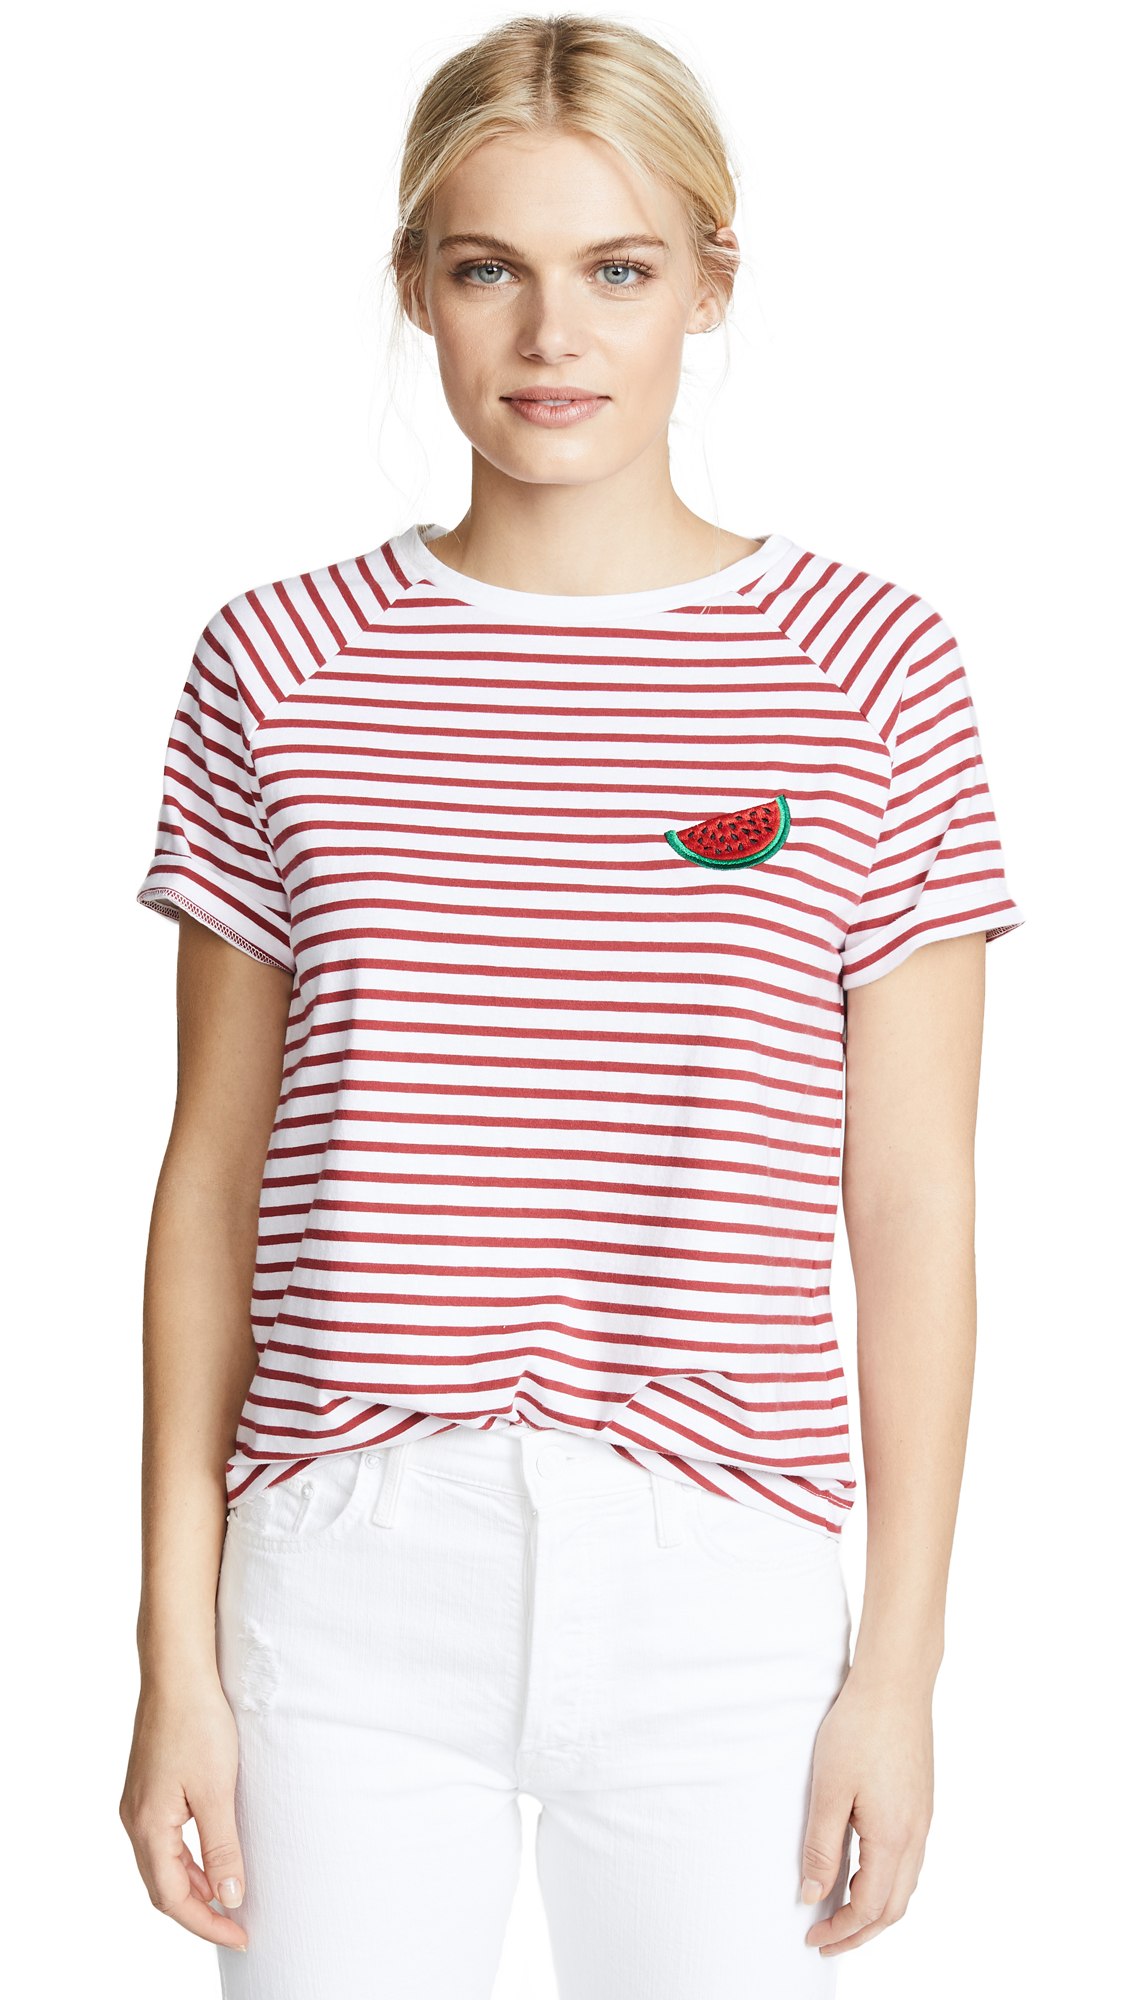 SOUTH PARADE WATERMELON STRIPED TEE